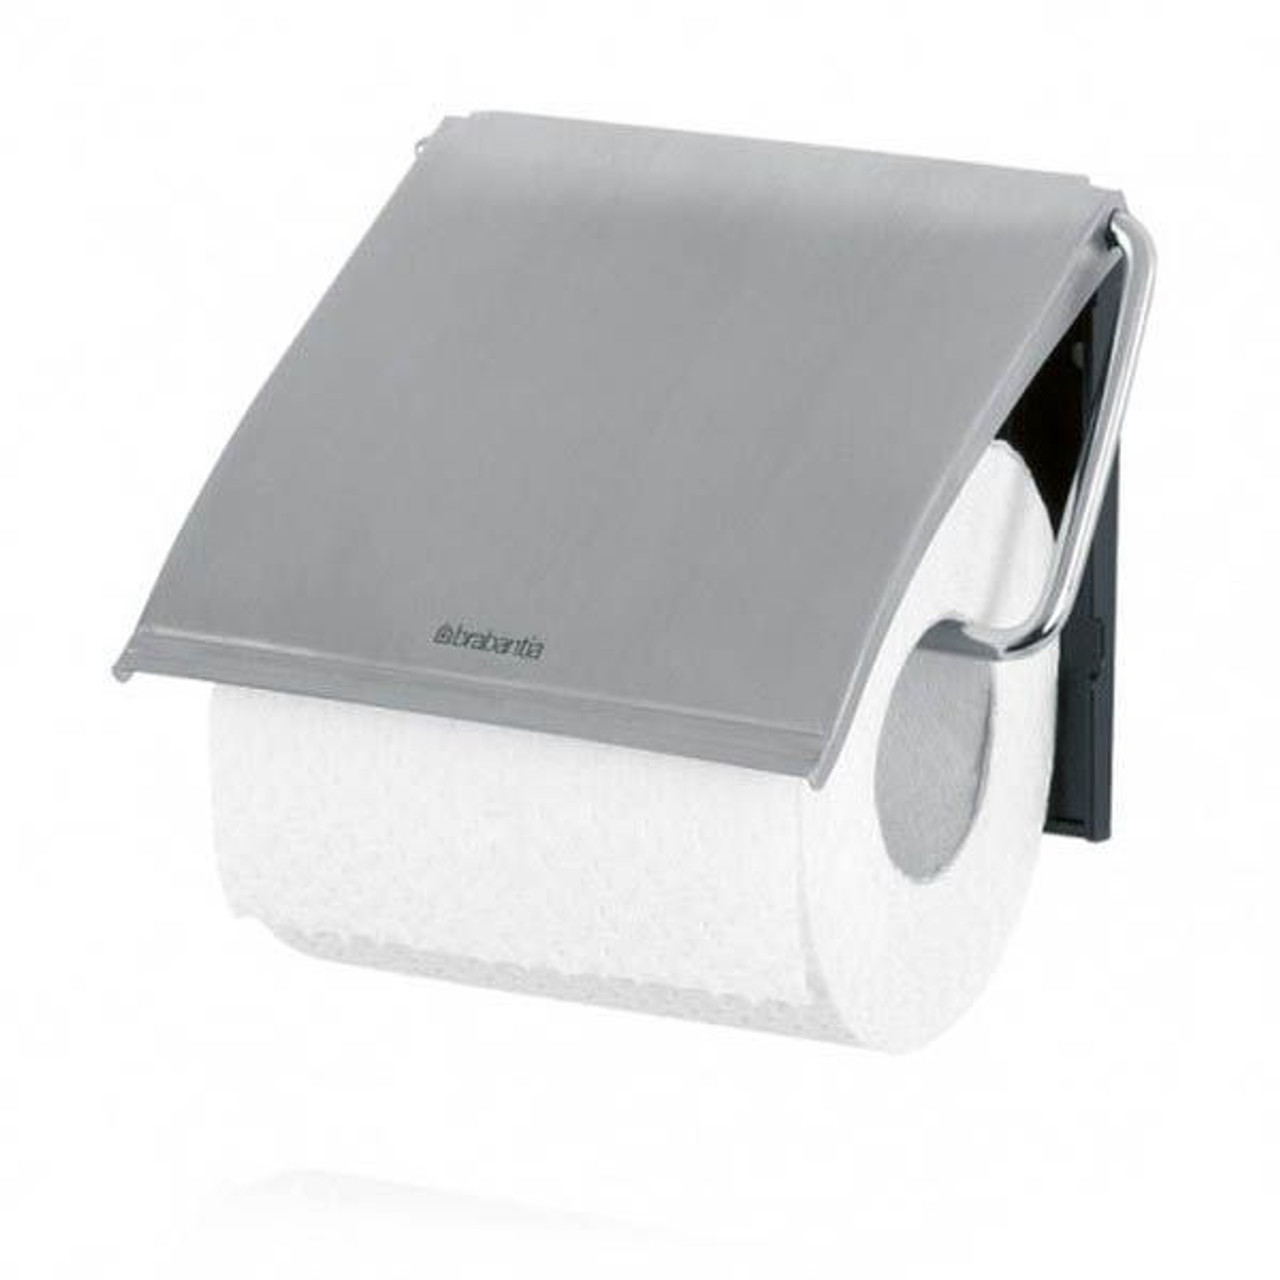 Brabantia Toilet Roll Holder Classic - Matt Steel